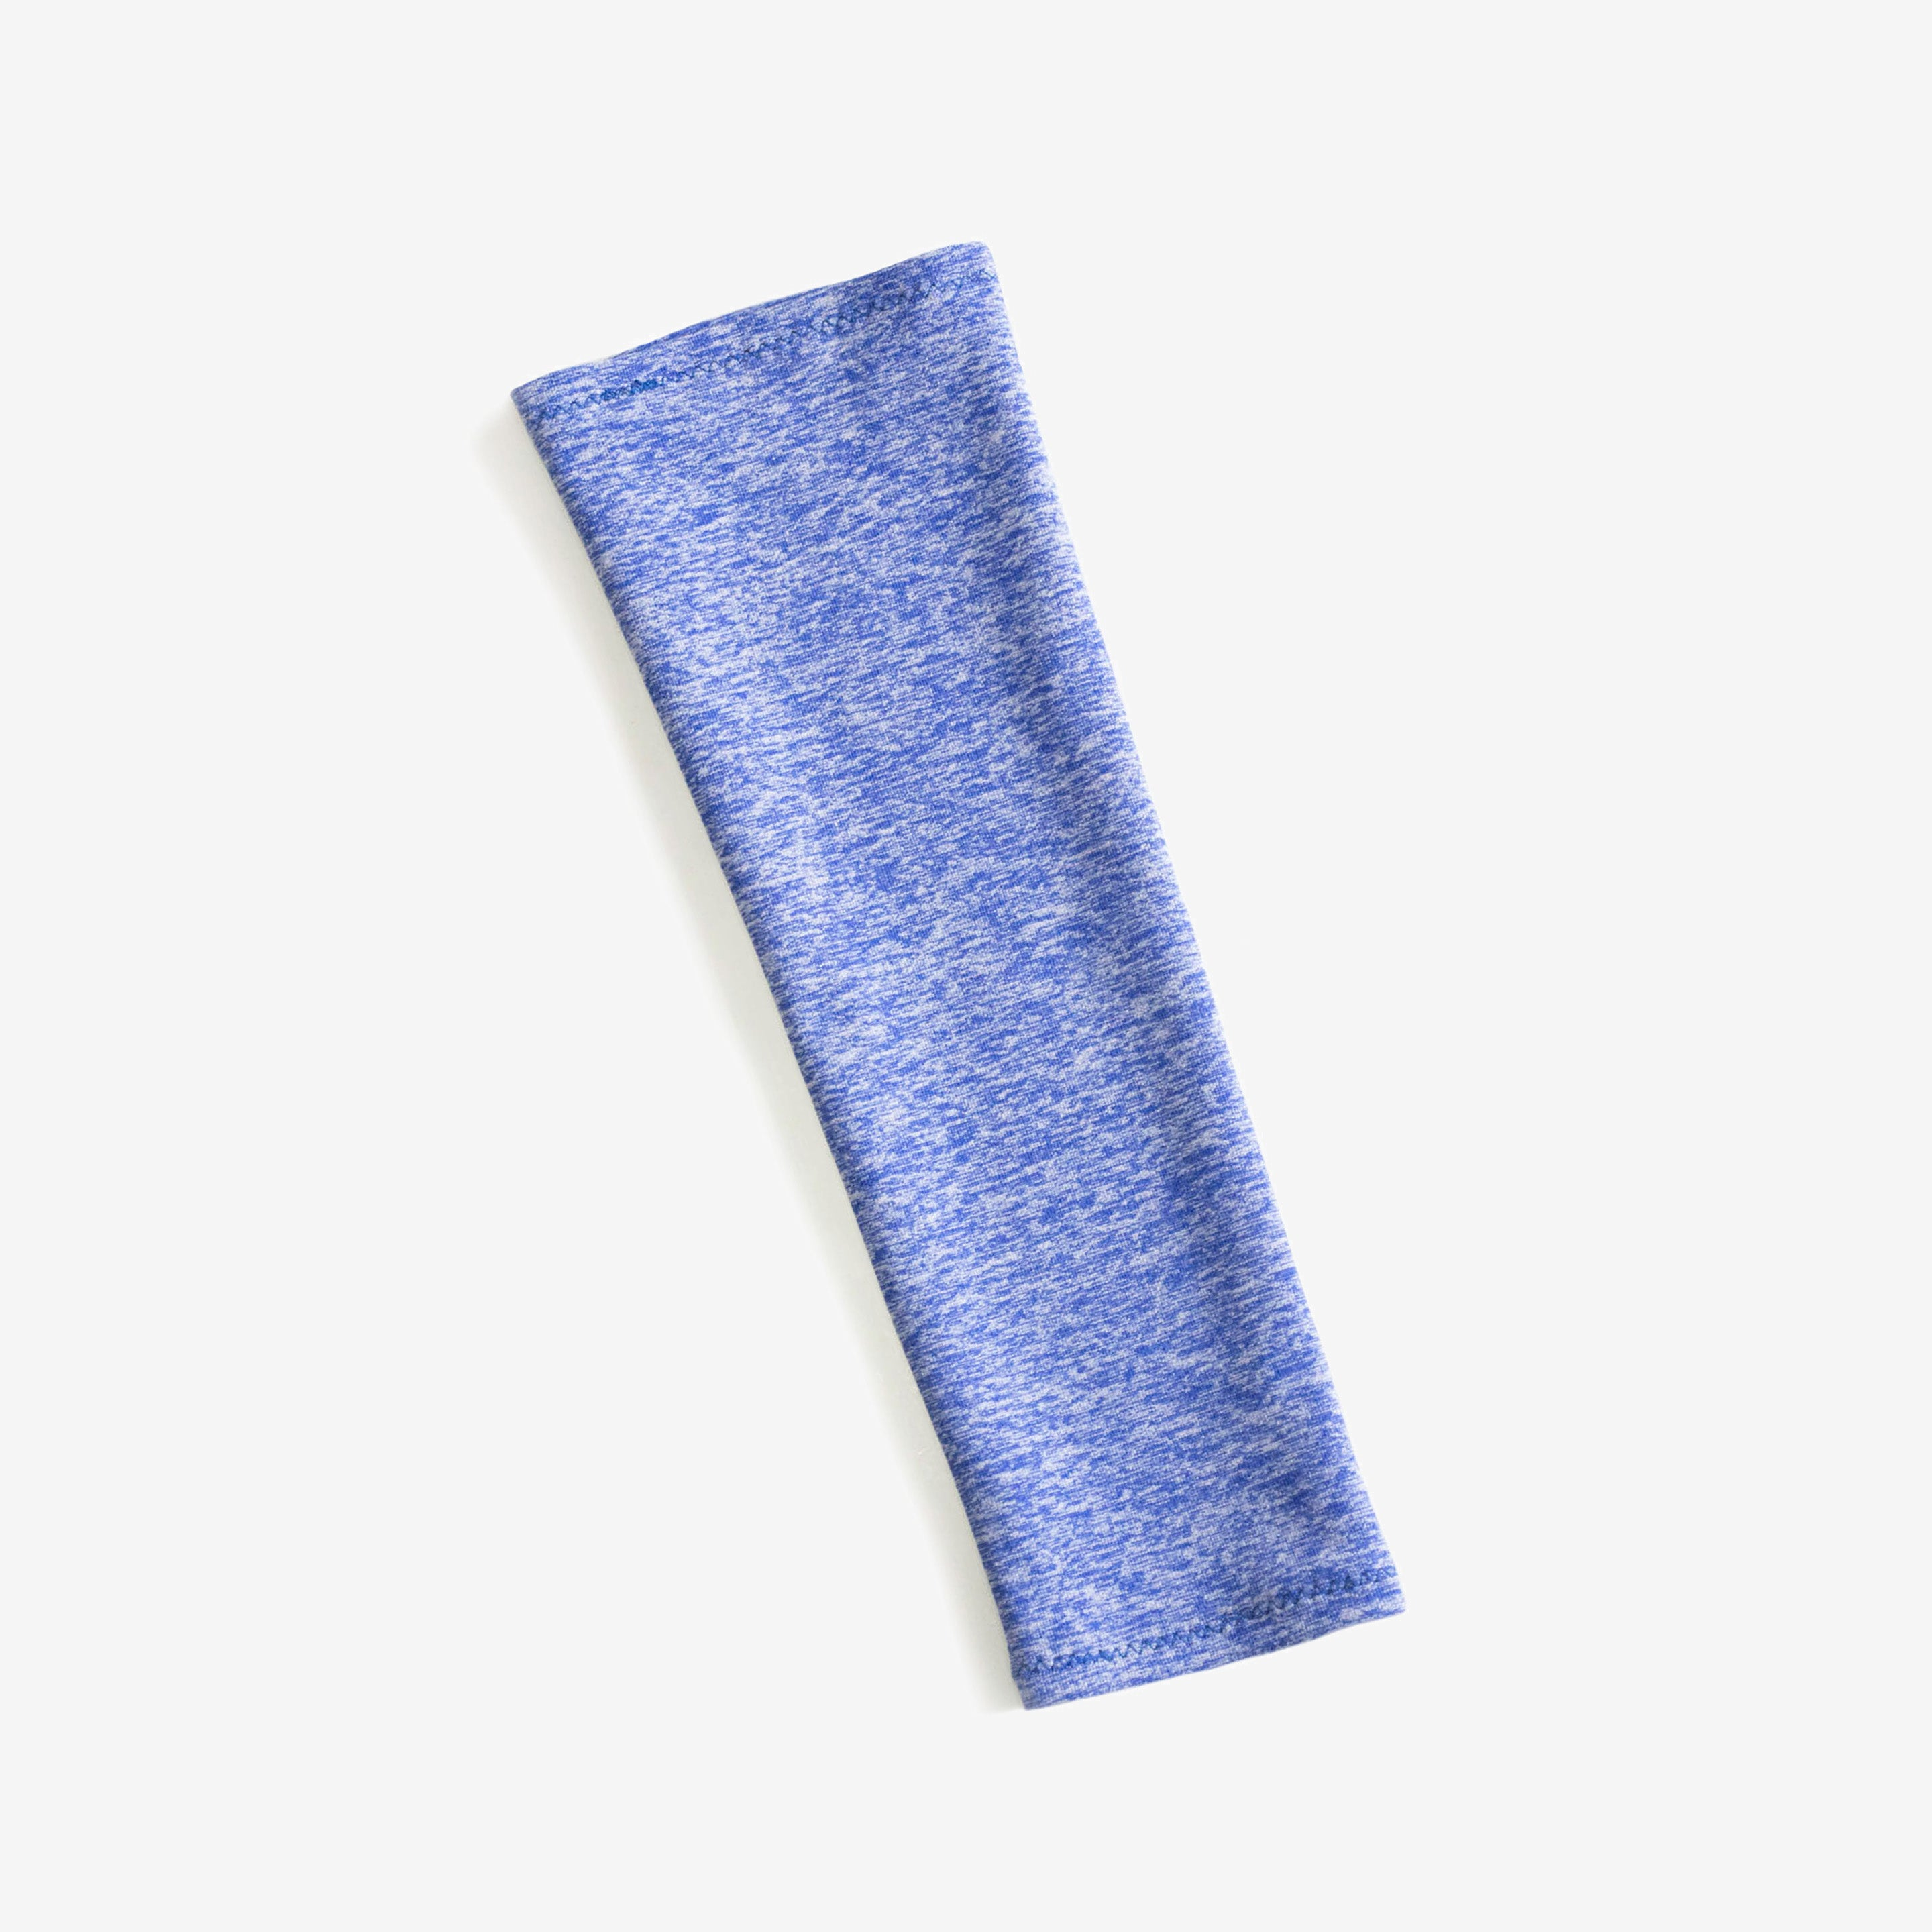 Soft, moisture wicking sleeves protect against sun exposure, available in indigo color